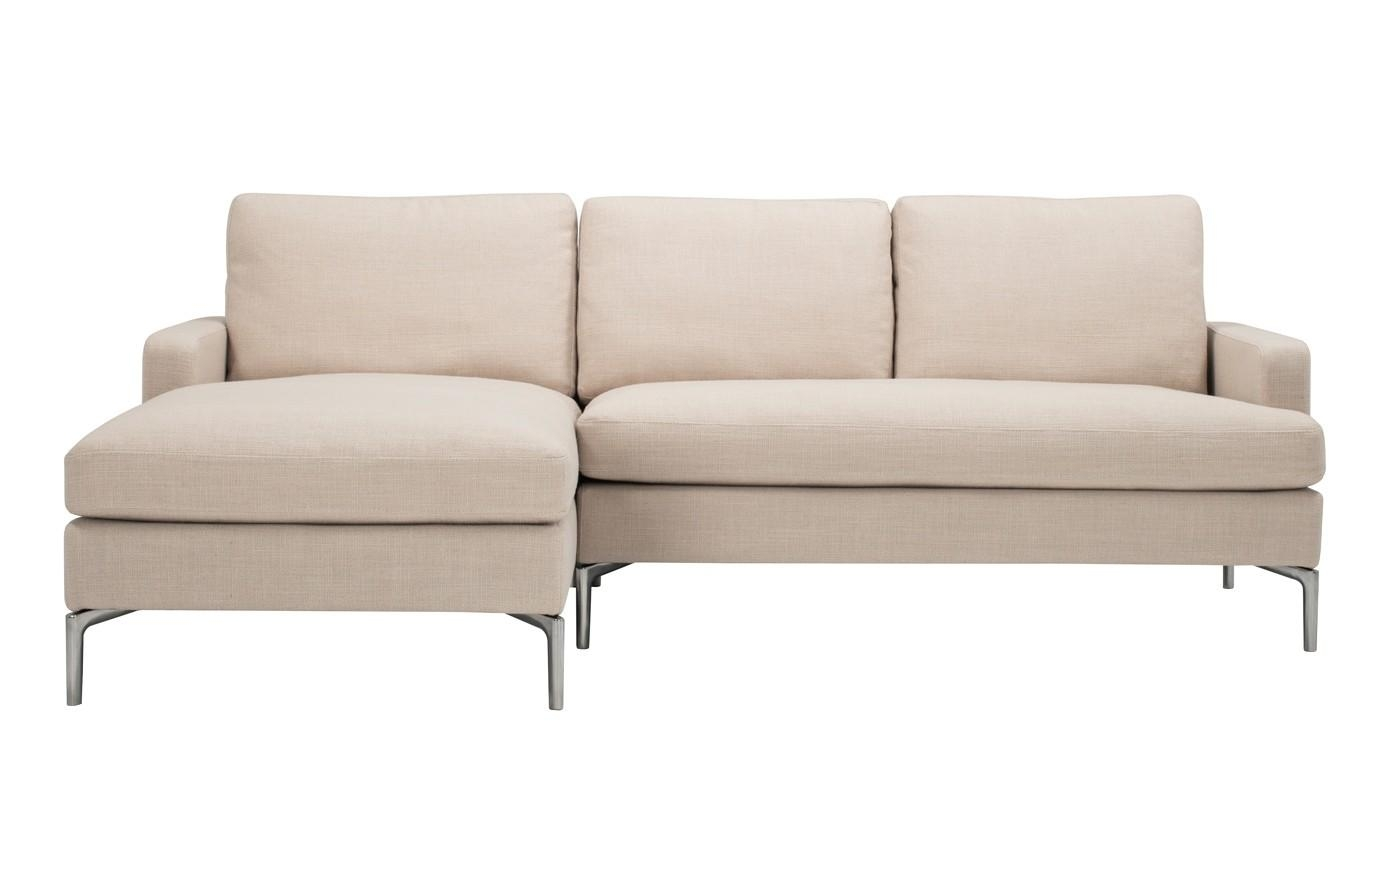 Eve Fabric 2 Piece Sectional Sofa With Chaise | Viesso Pertaining To Sectional Sofa With 2 Chaises (Image 15 of 20)